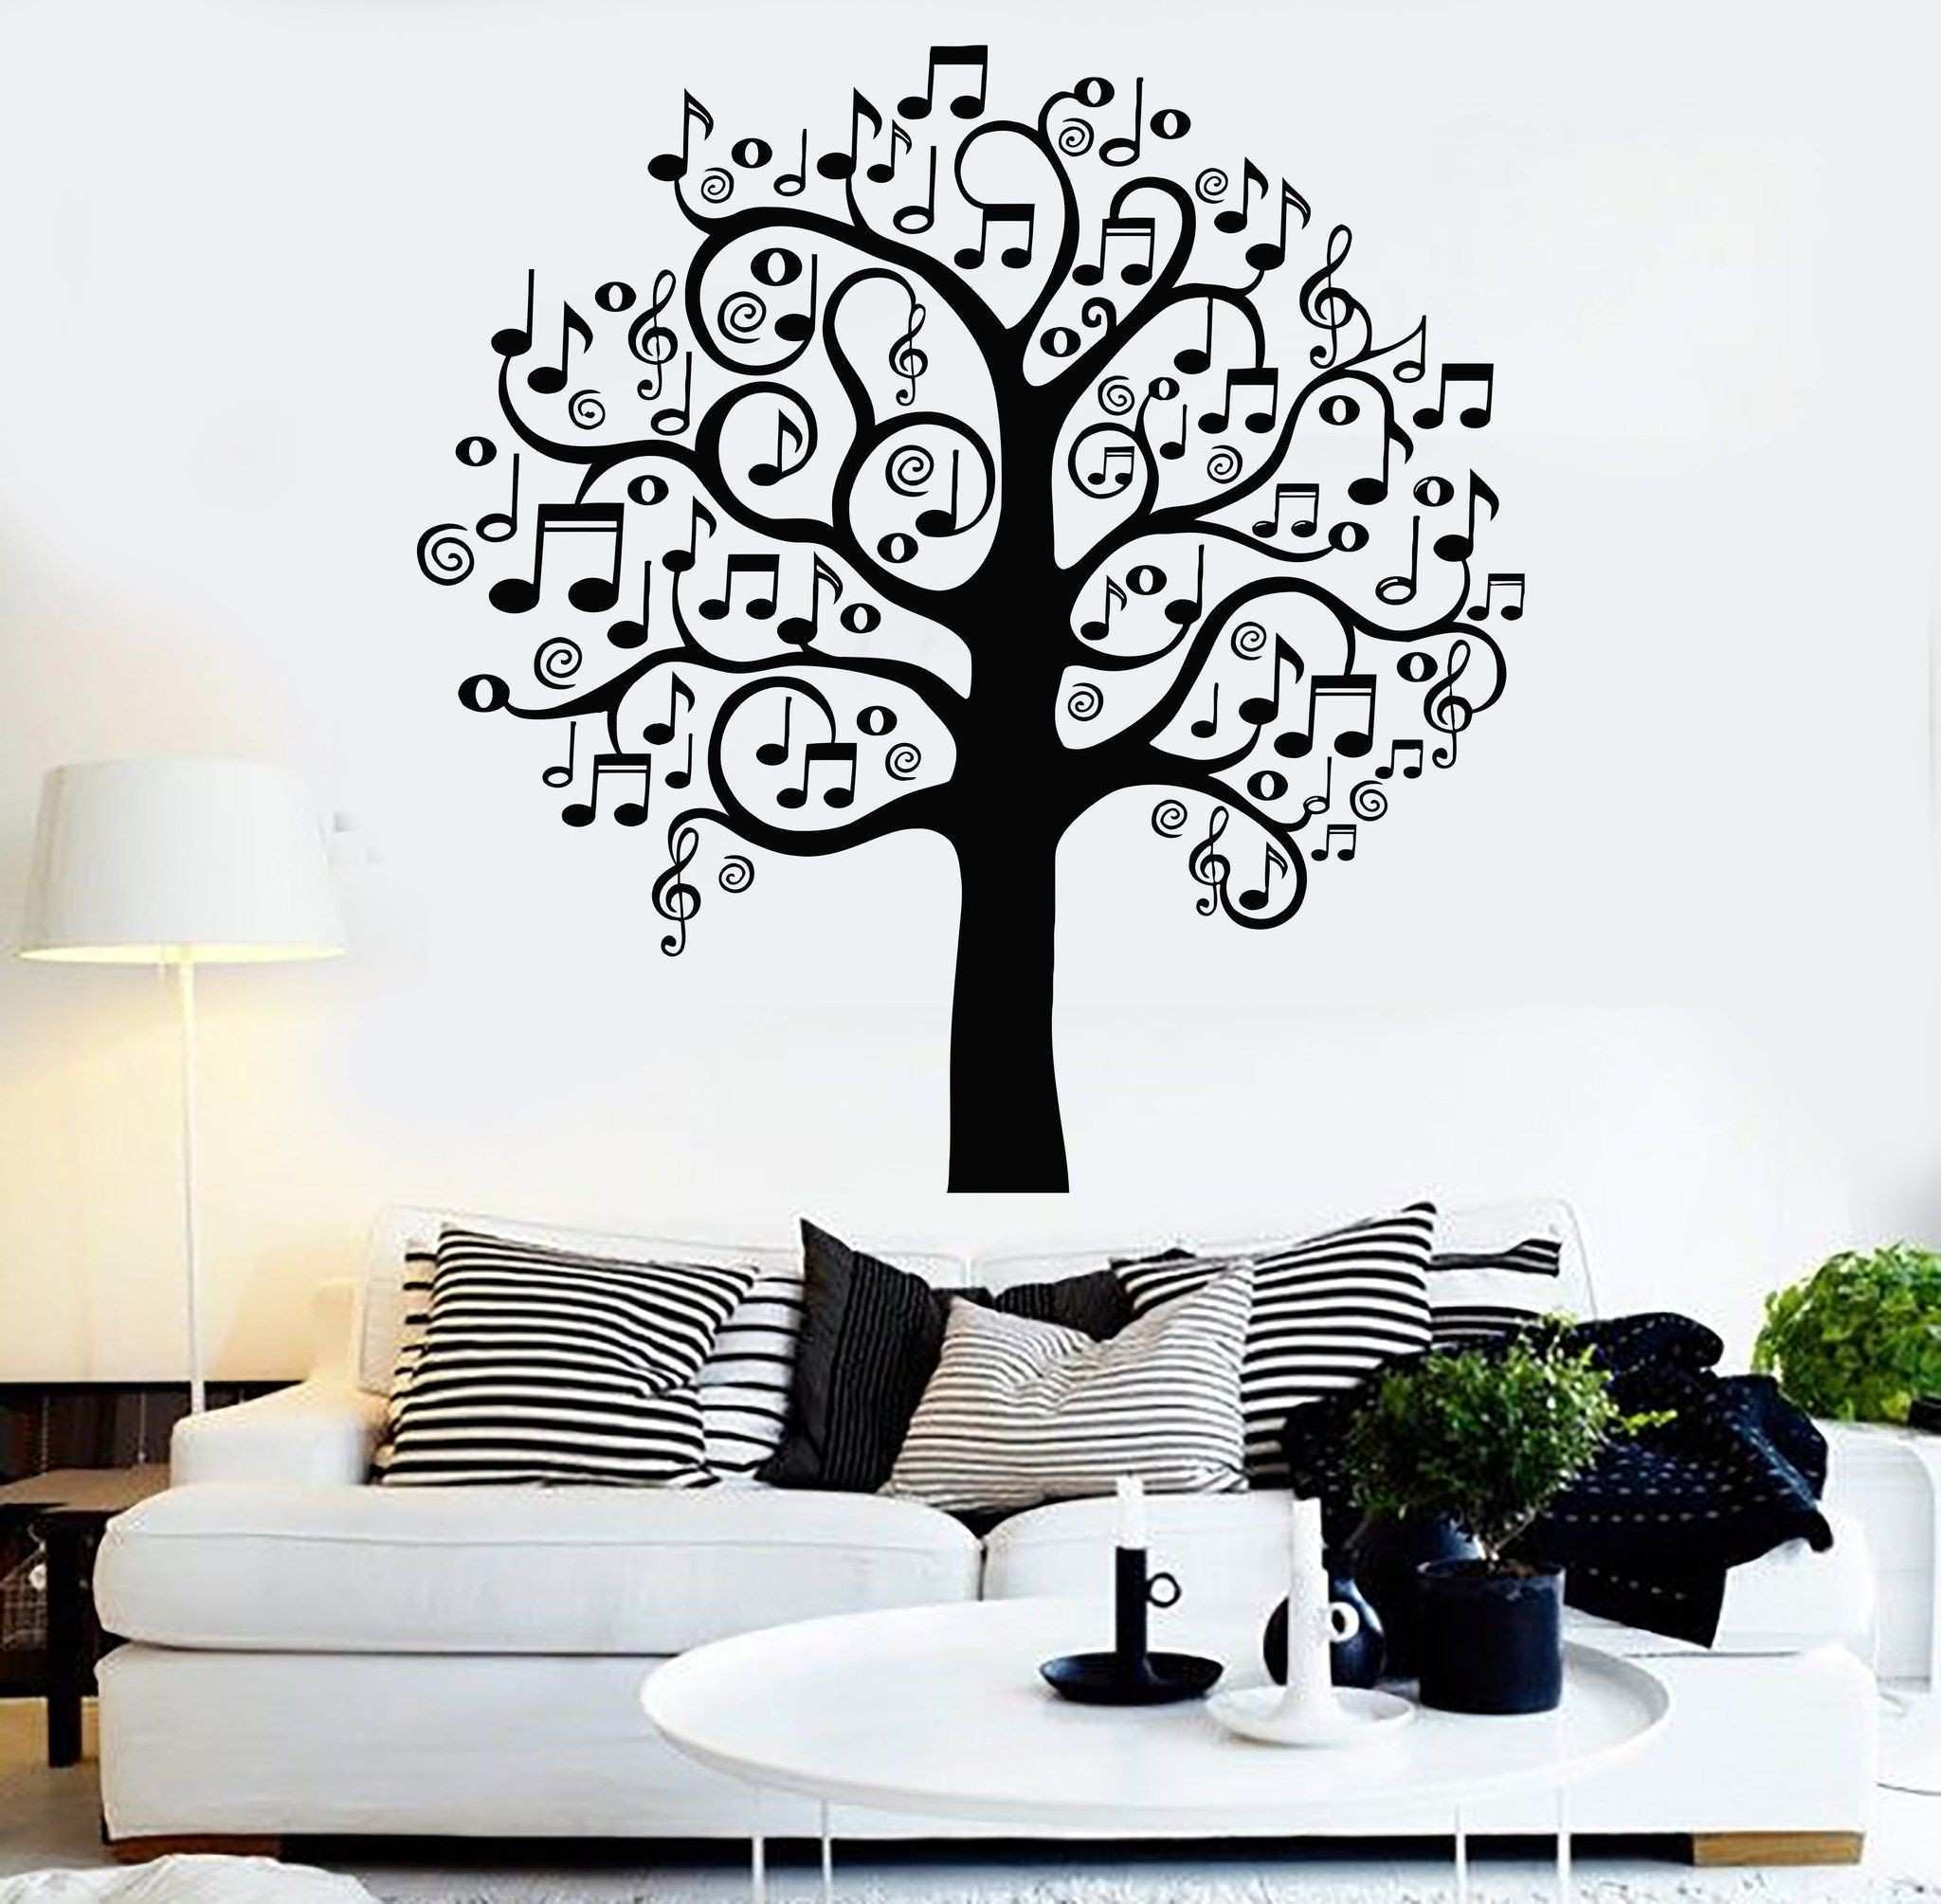 Family Tree Framed Wall Art Elegant 36 Elegant Family Tree Wall Art ...